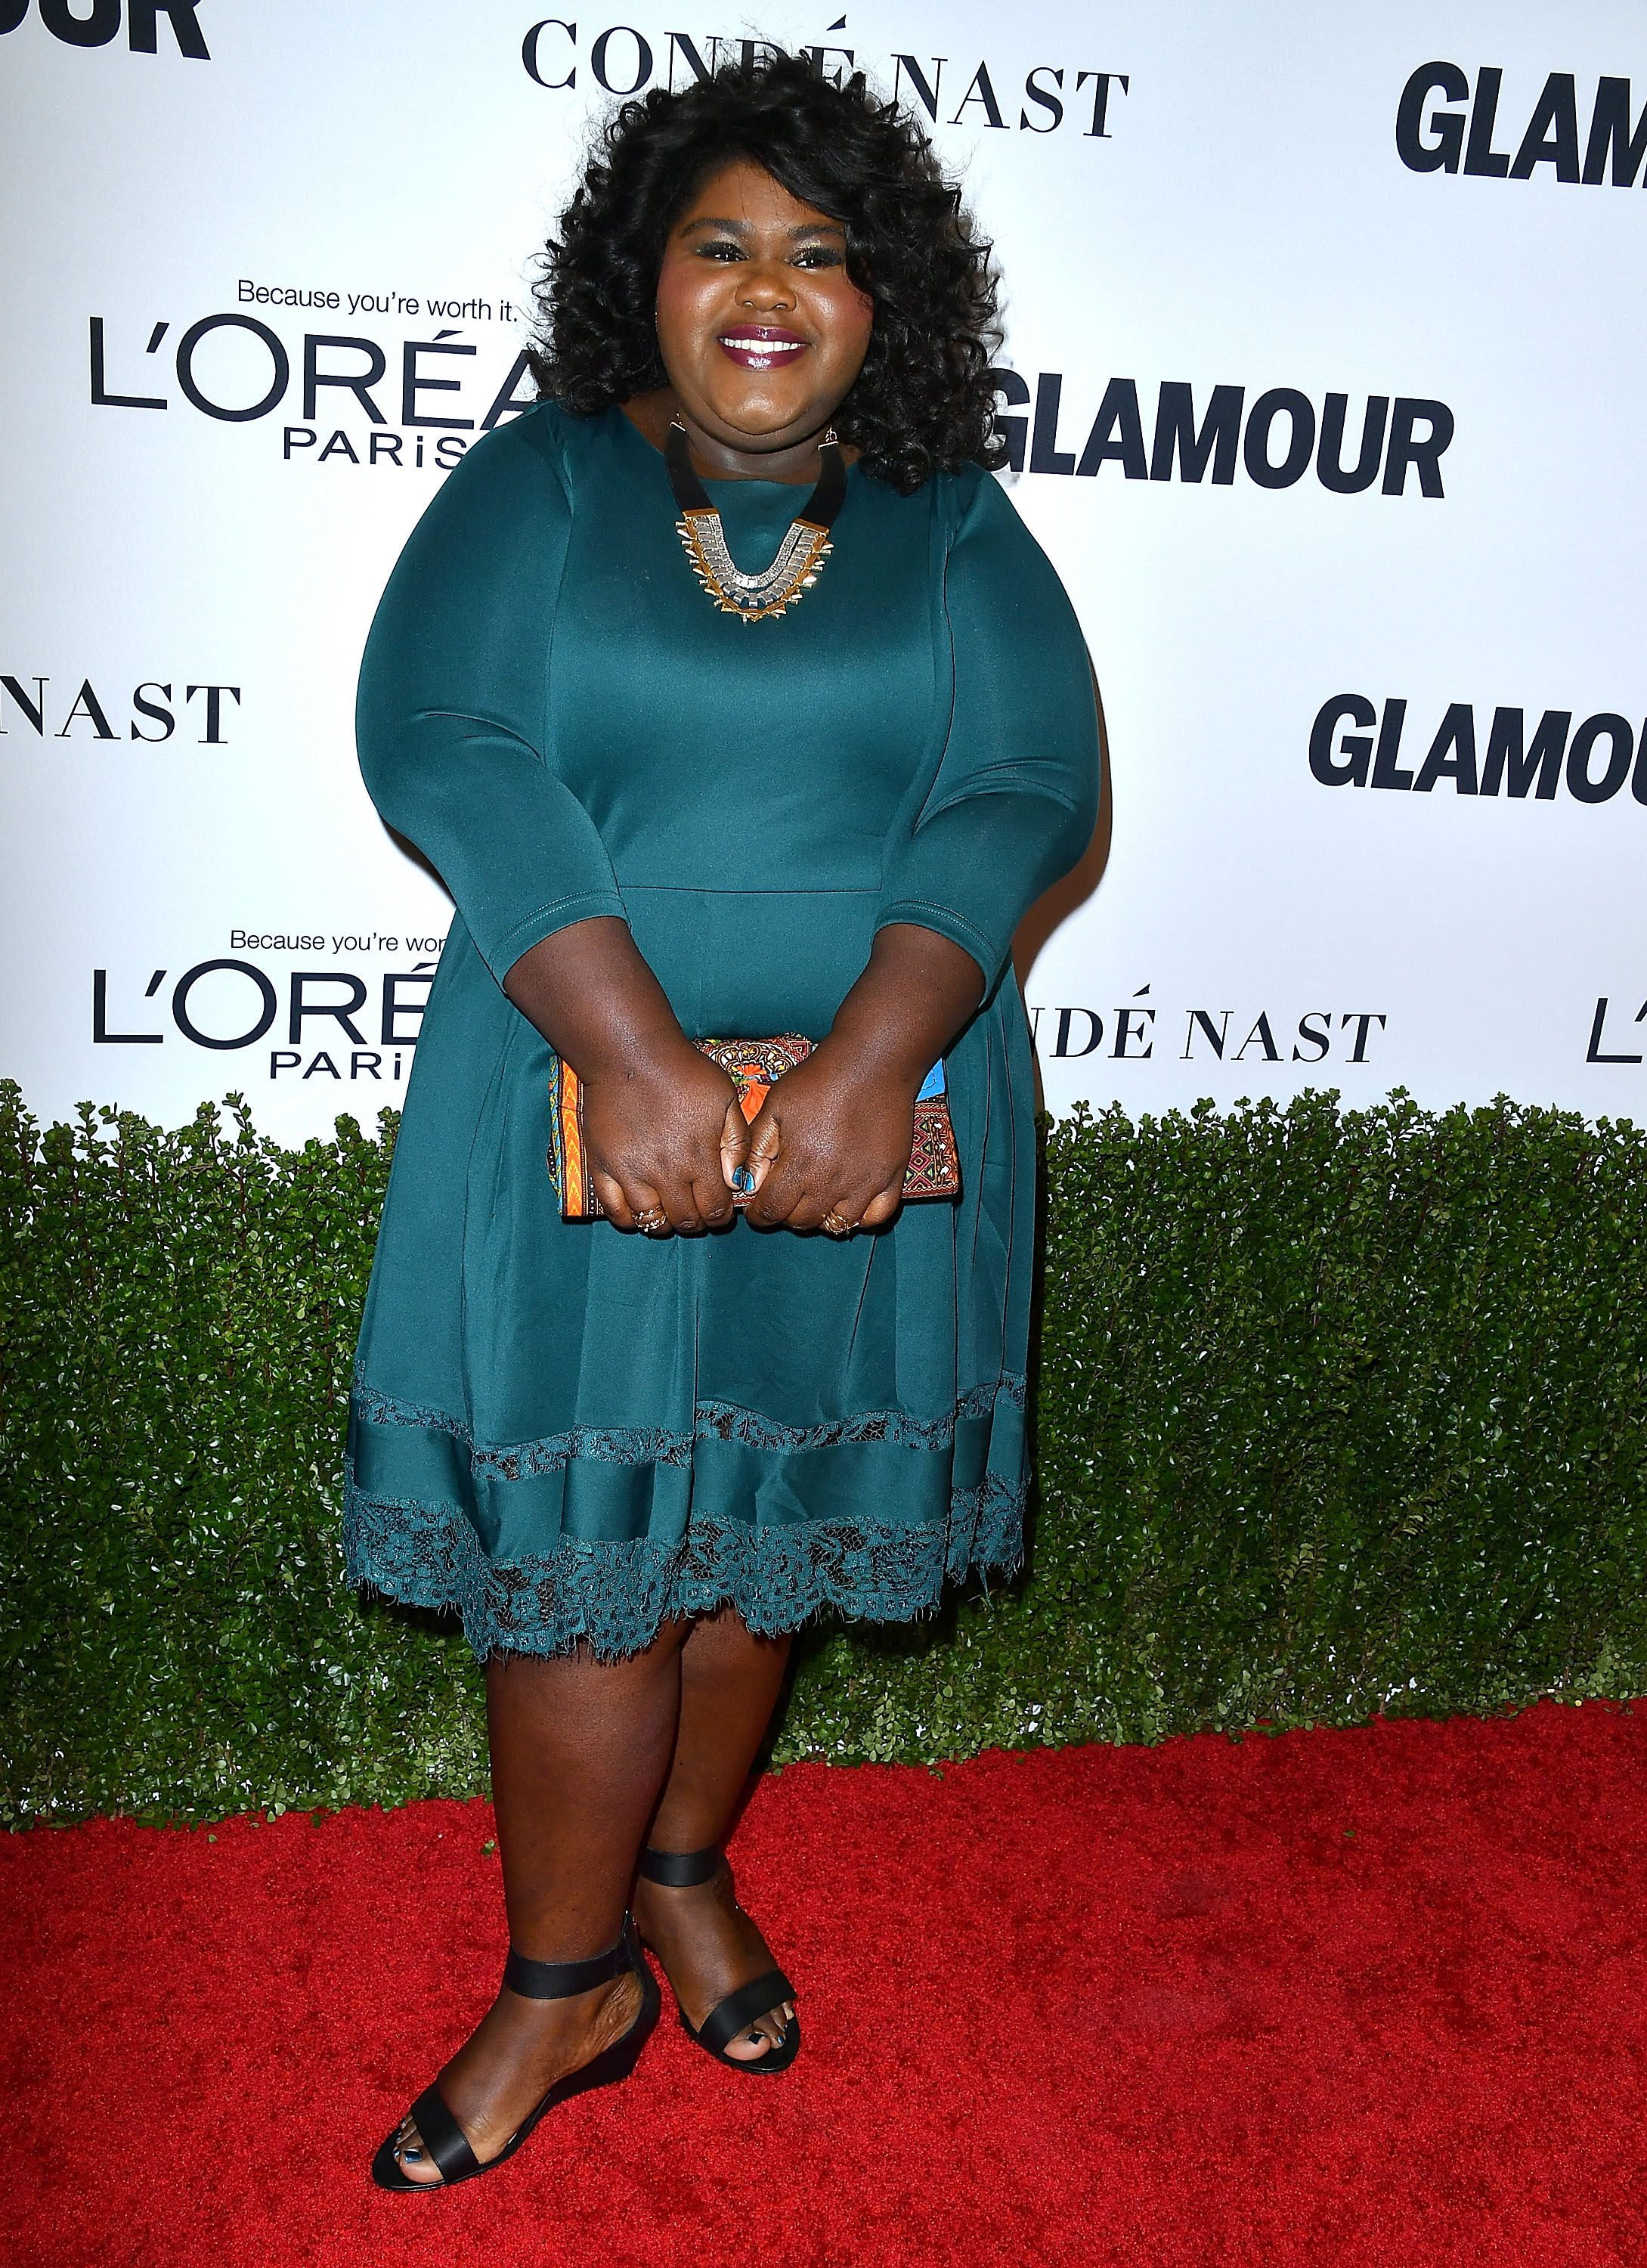 LOS ANGELES, CA - NOVEMBER 14: Gabourey Sidibe arrives at the Glamour Women Of The Year 2016 at NeueHouse Hollywood on November 14, 2016 in Los Angeles, California. (Photo by Steve Granitz/WireImage)